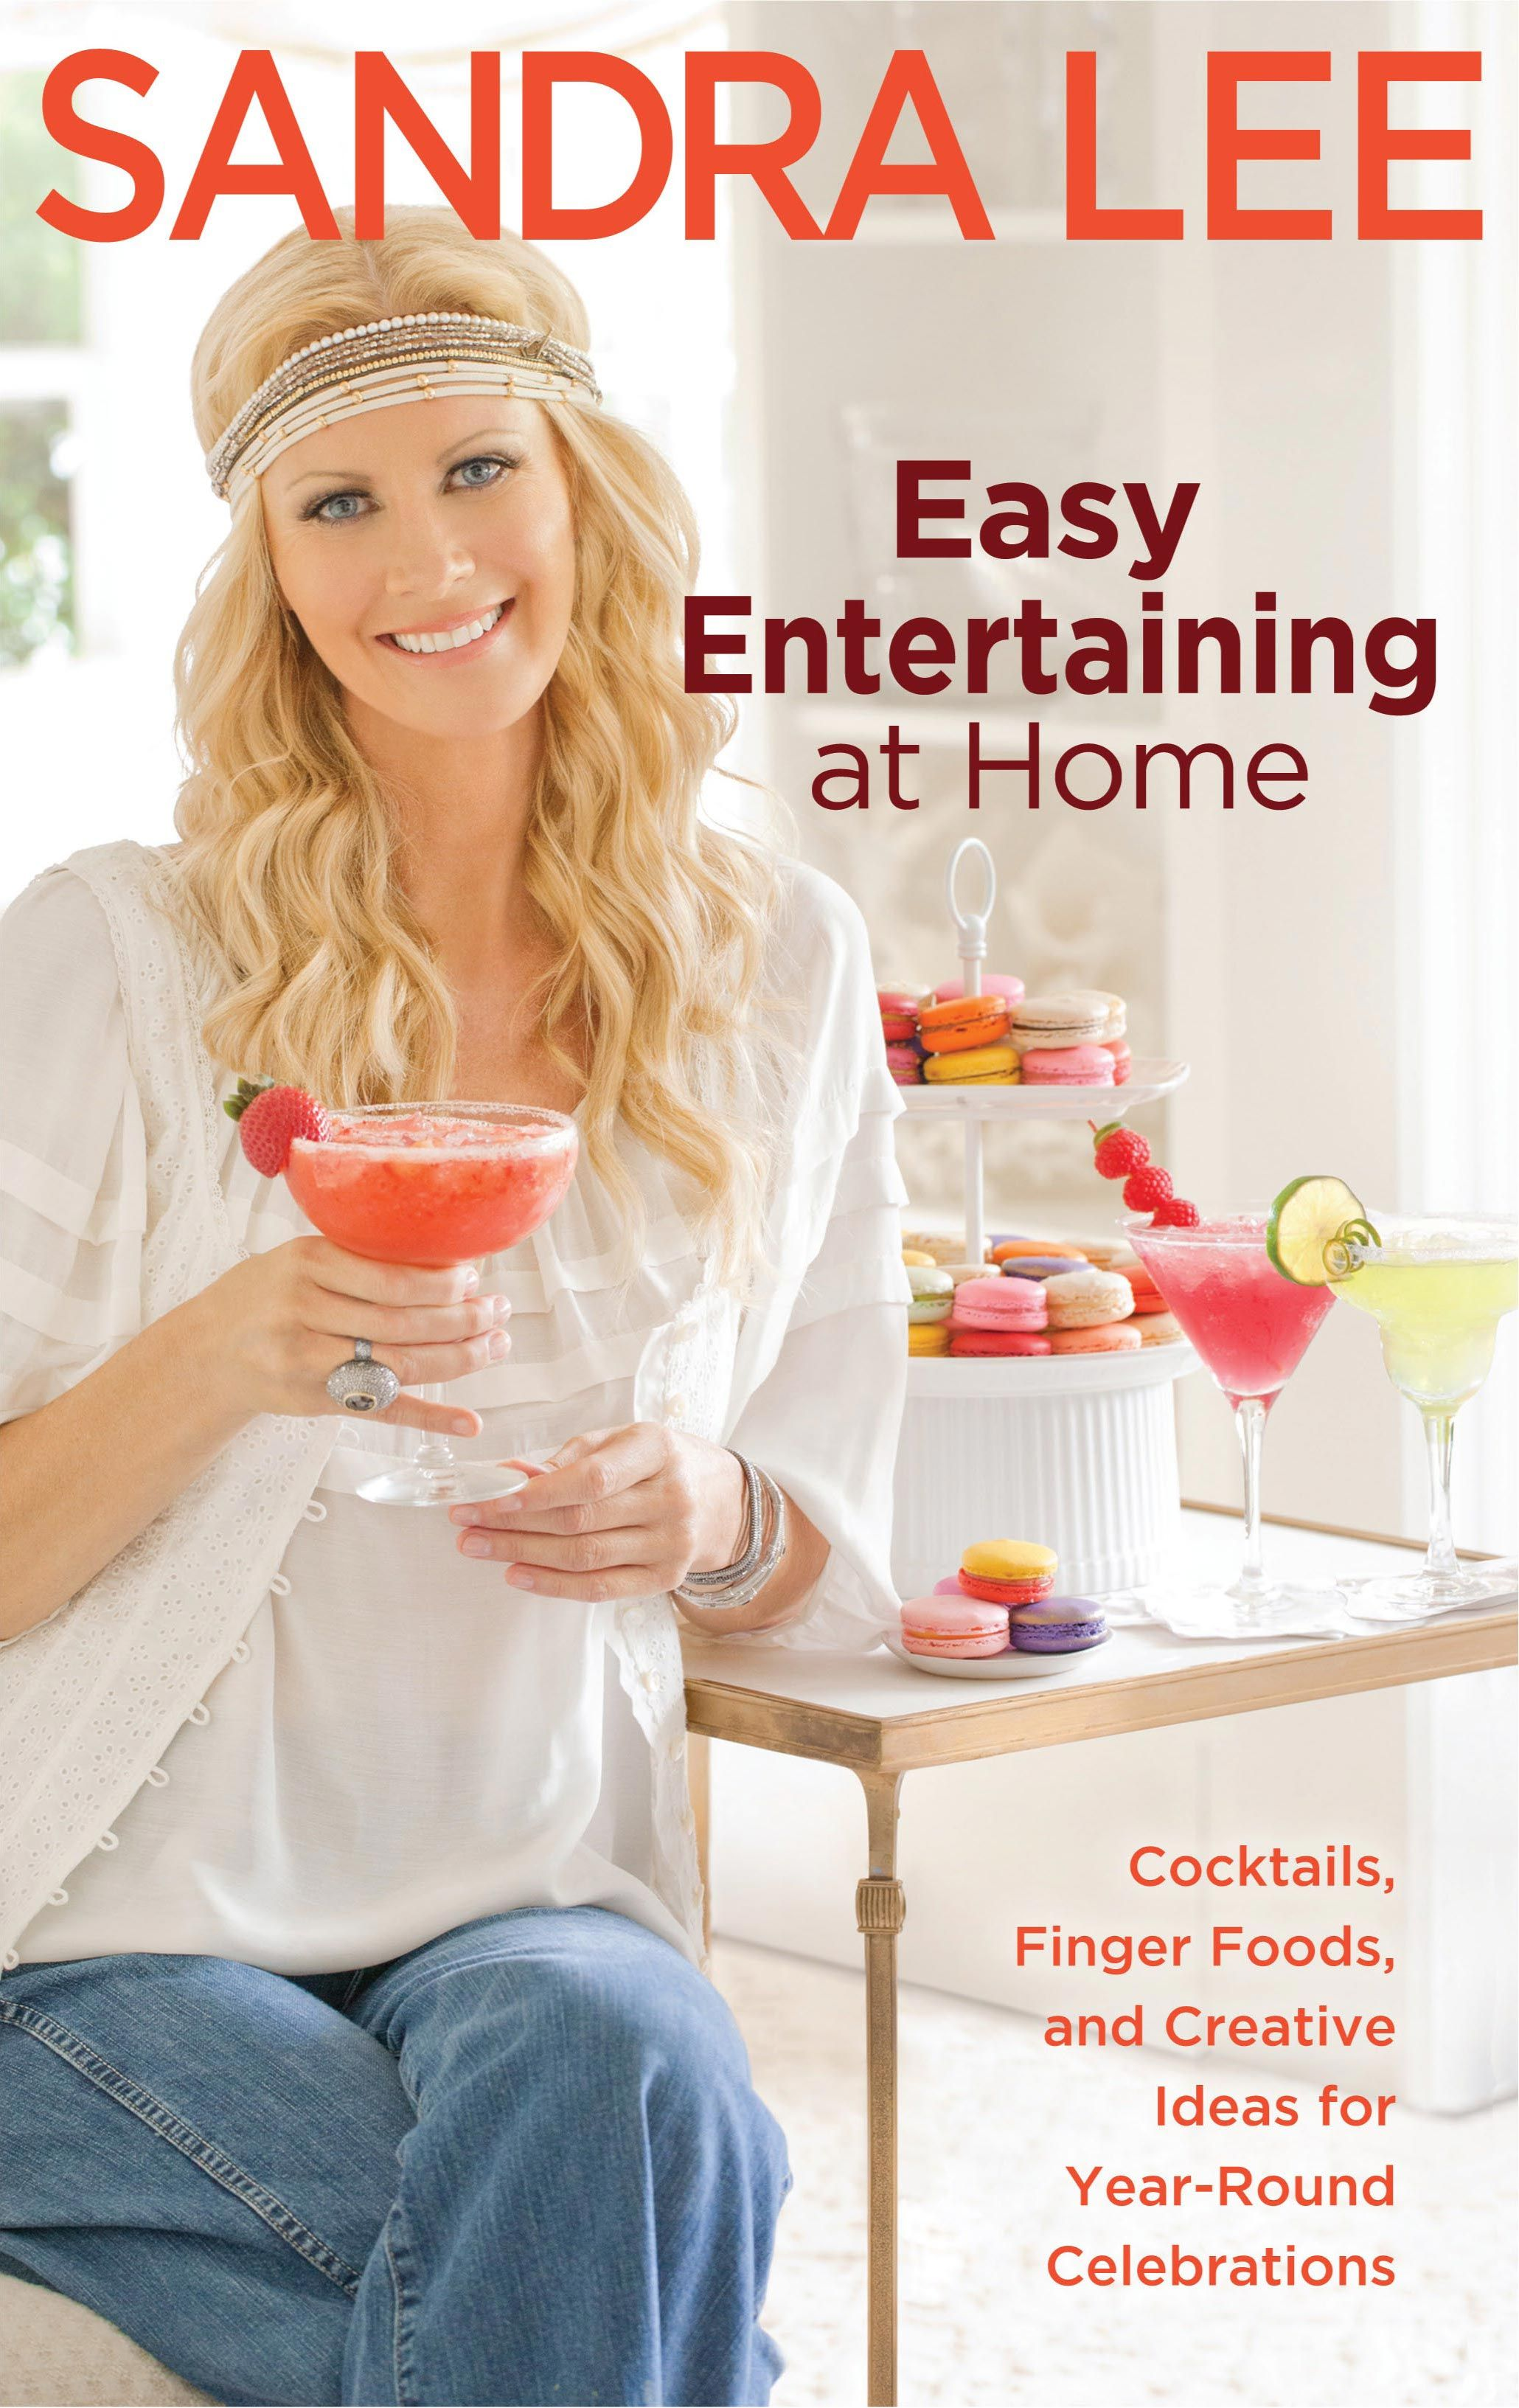 Sandra lees easy entertaining at home cocktails finger foods and easy entertaining at home cocktails finger foods and creative ideas for year round celebrations a book by sandra lee forumfinder Images